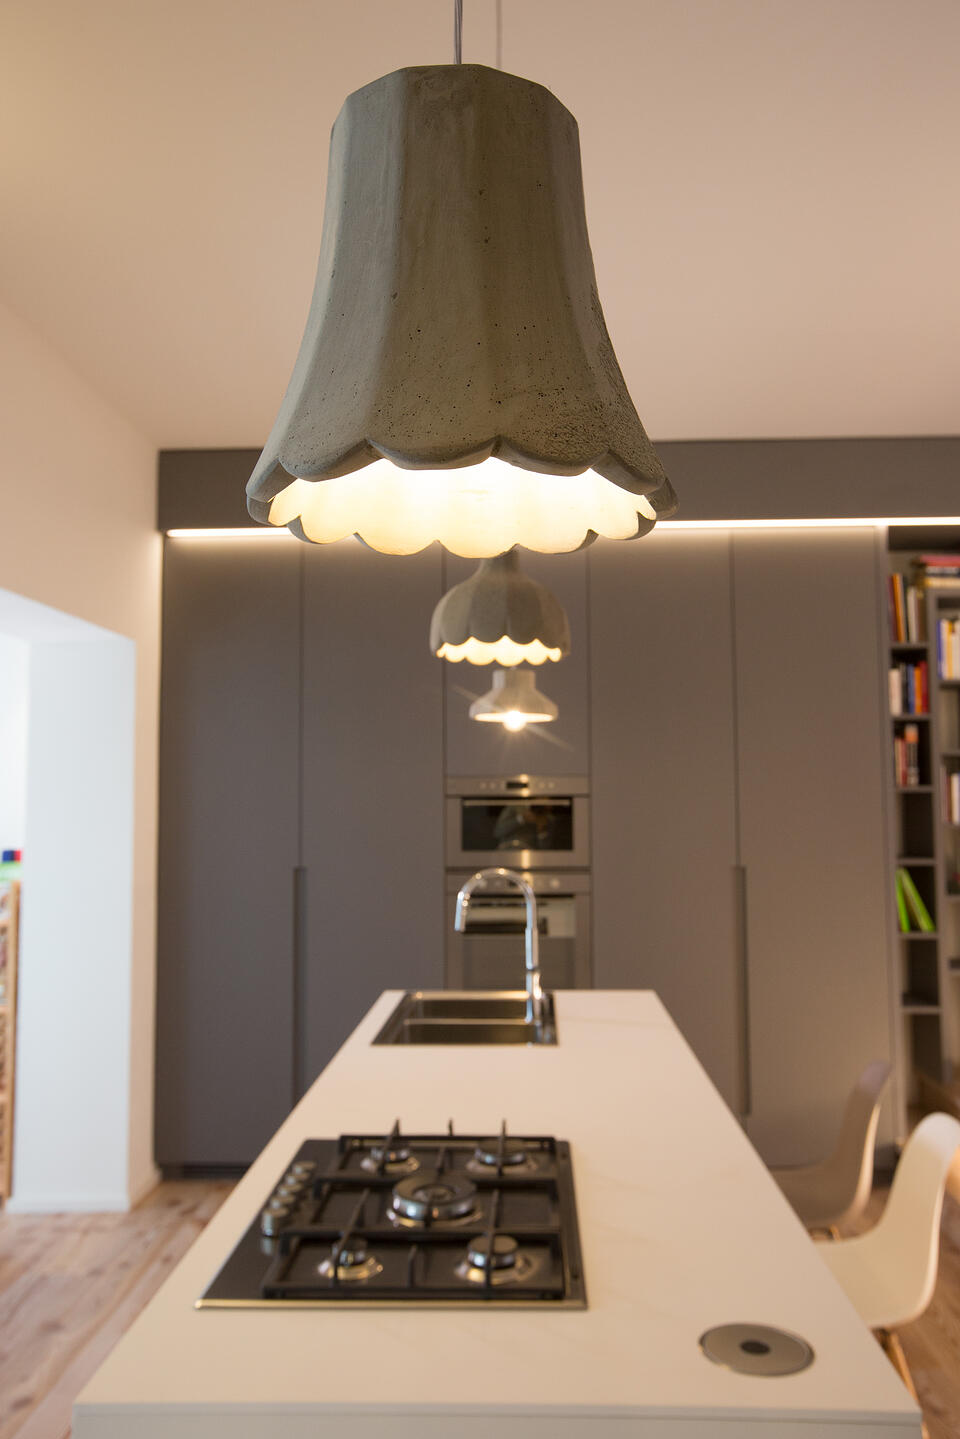 Settenani Collection How to illuminate a kitchen hob